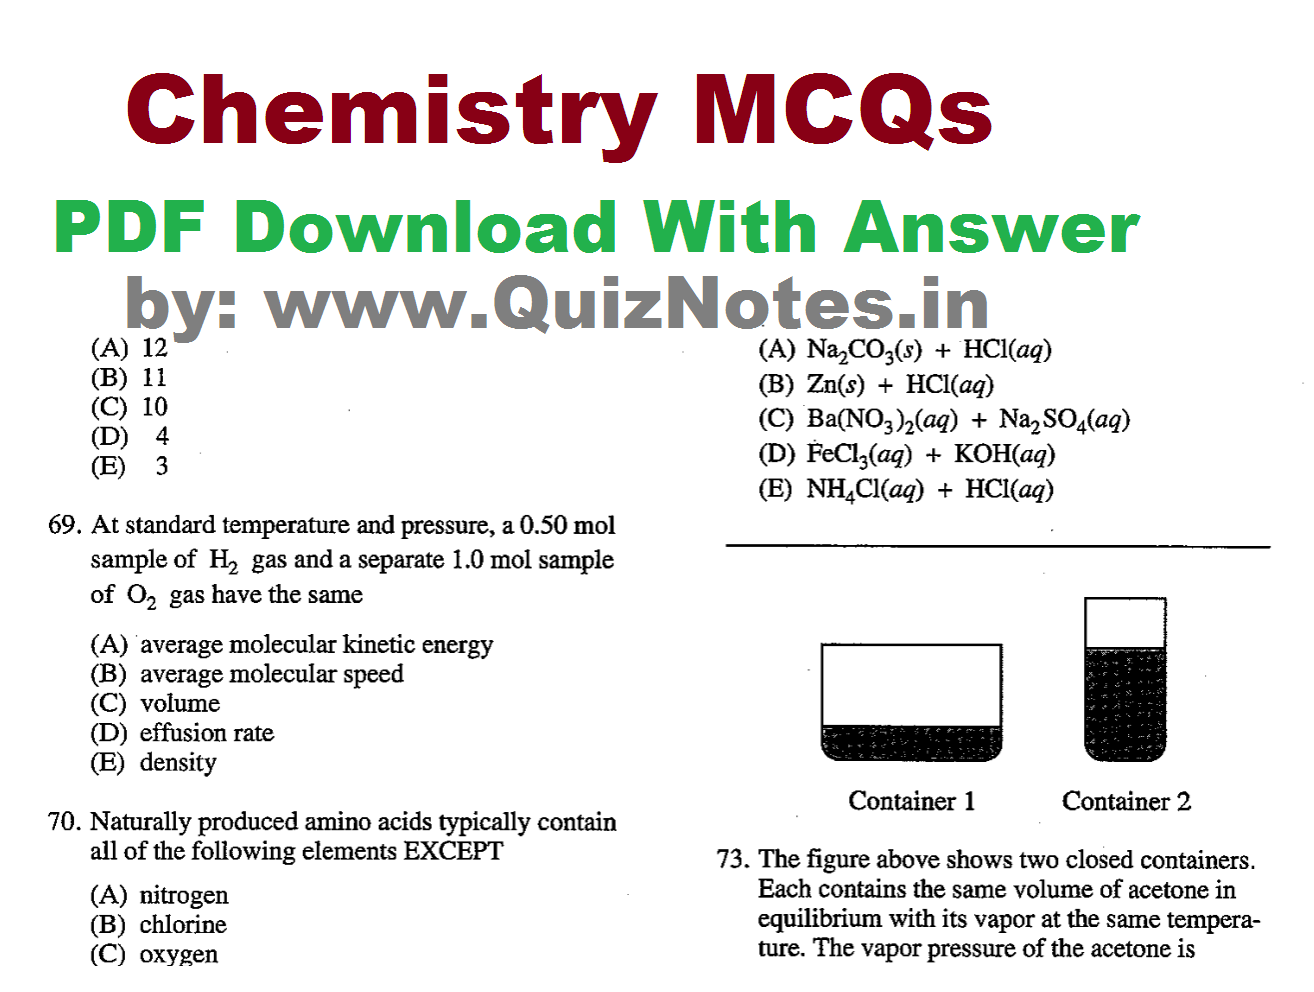 chemistry questions and answers Access chemistry guided textbook solutions and 24/7 study help from chegg get help now.